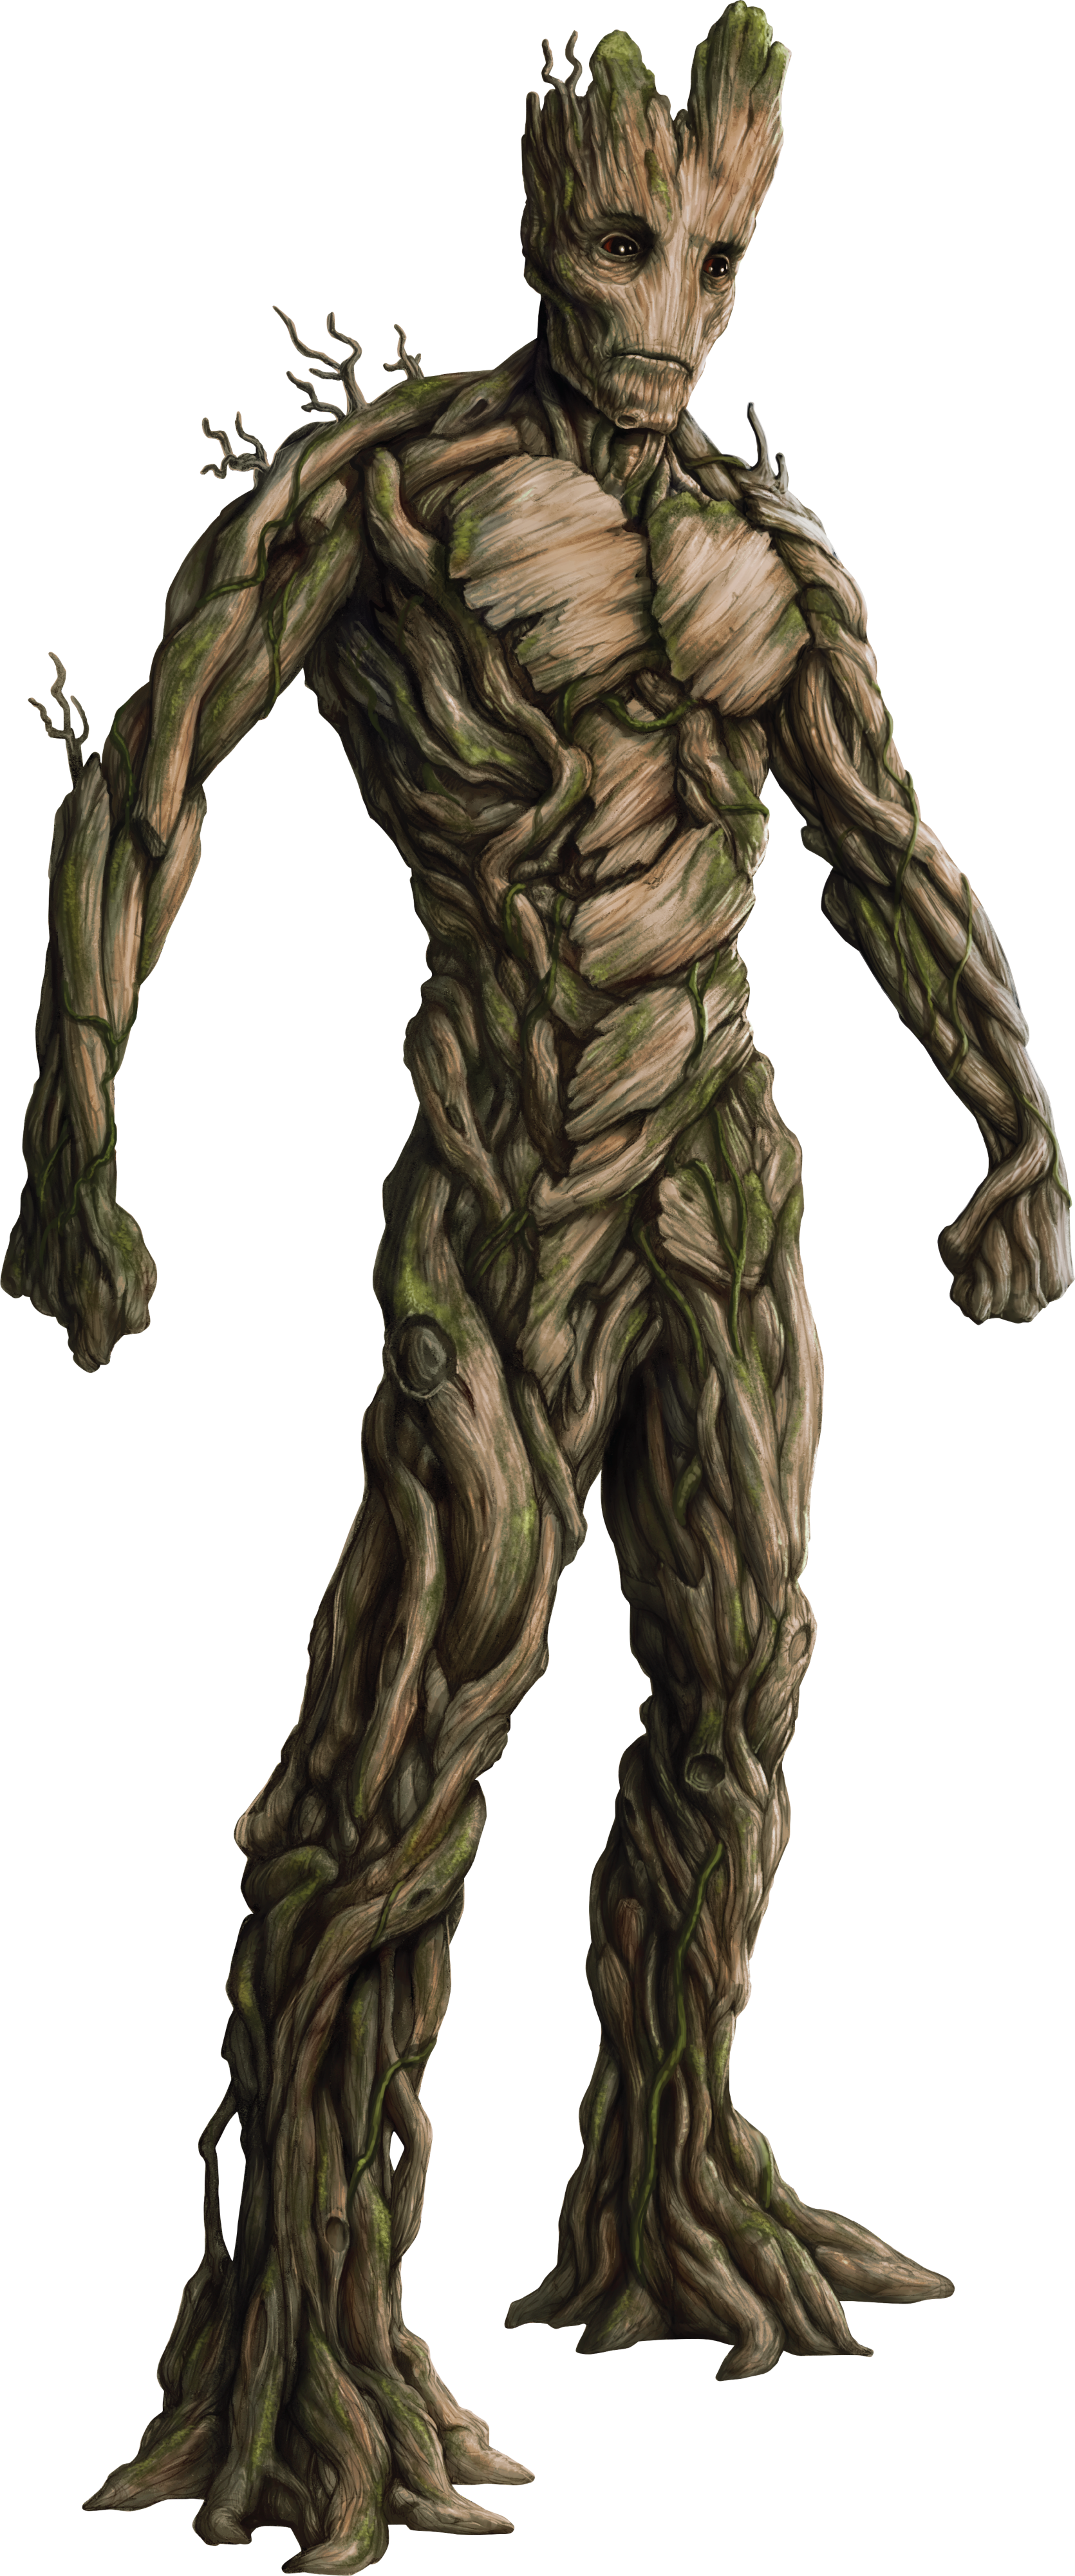 Groot png marvel. Image gg fh cinematic